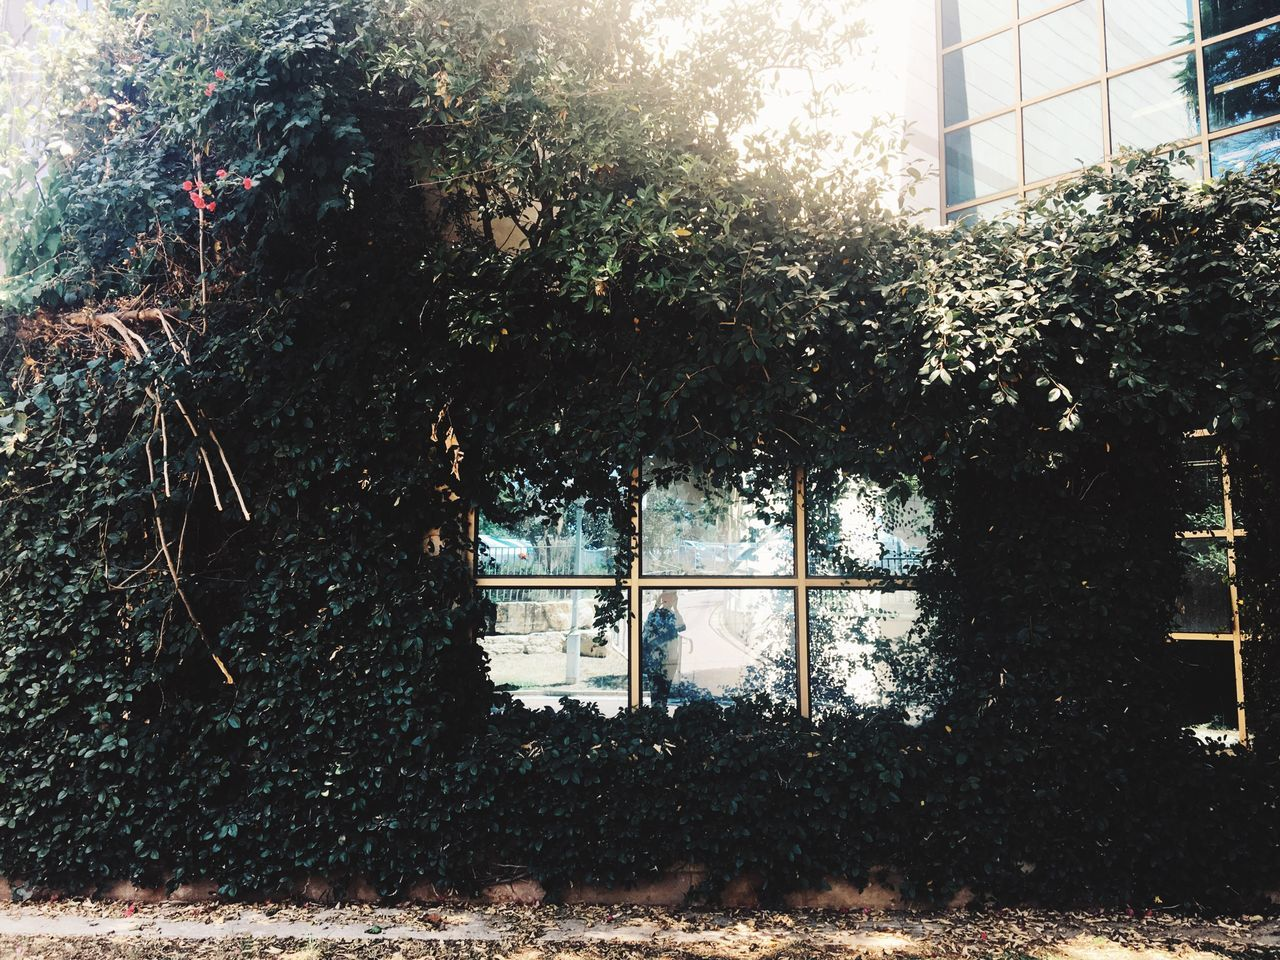 window, tree, architecture, day, built structure, no people, sunlight, growth, building exterior, plant, outdoors, nature